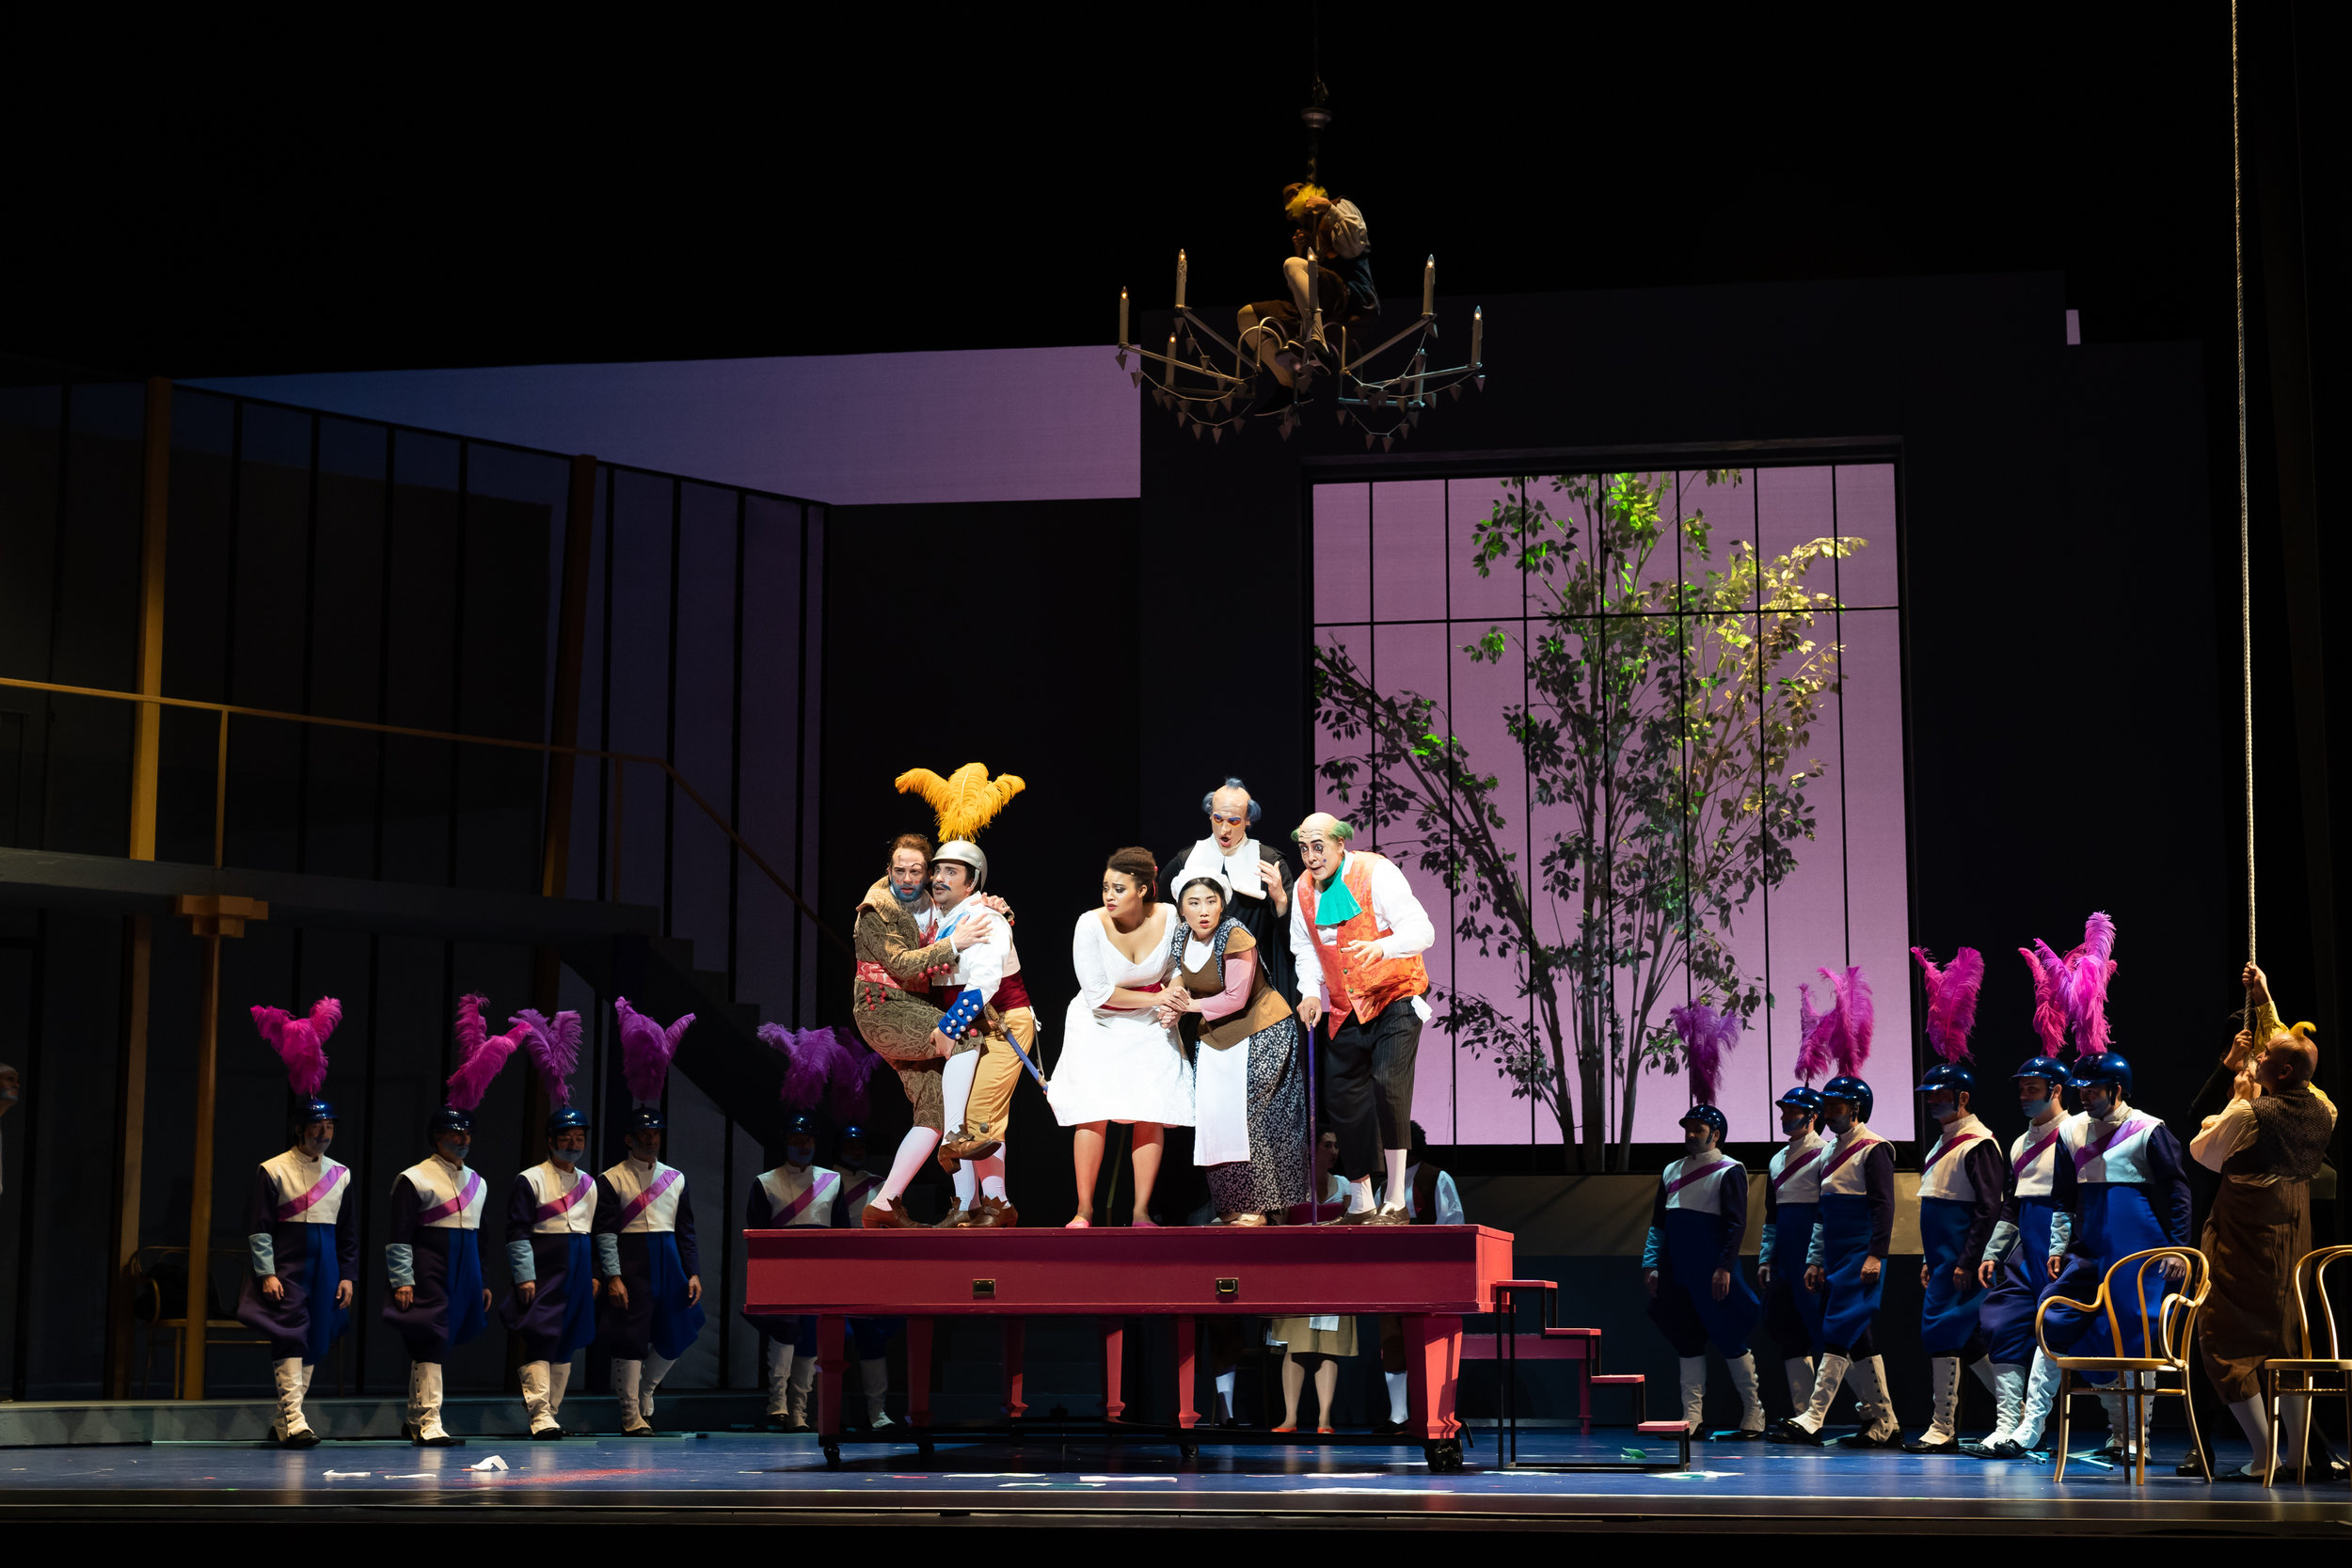 l to r on the grande piano: Johnathan McCullough as Figaro, Christopher Bozeka as Almavira, Taylor Raven as Rosina, Niru Liu as Berta, Patrick Guetti as Don Basilio, and Calvin Griffin as Dr. Bartolo. Photo by Scott Suchman; courtesy of Wolf Trap Foundation for the Performing Arts.